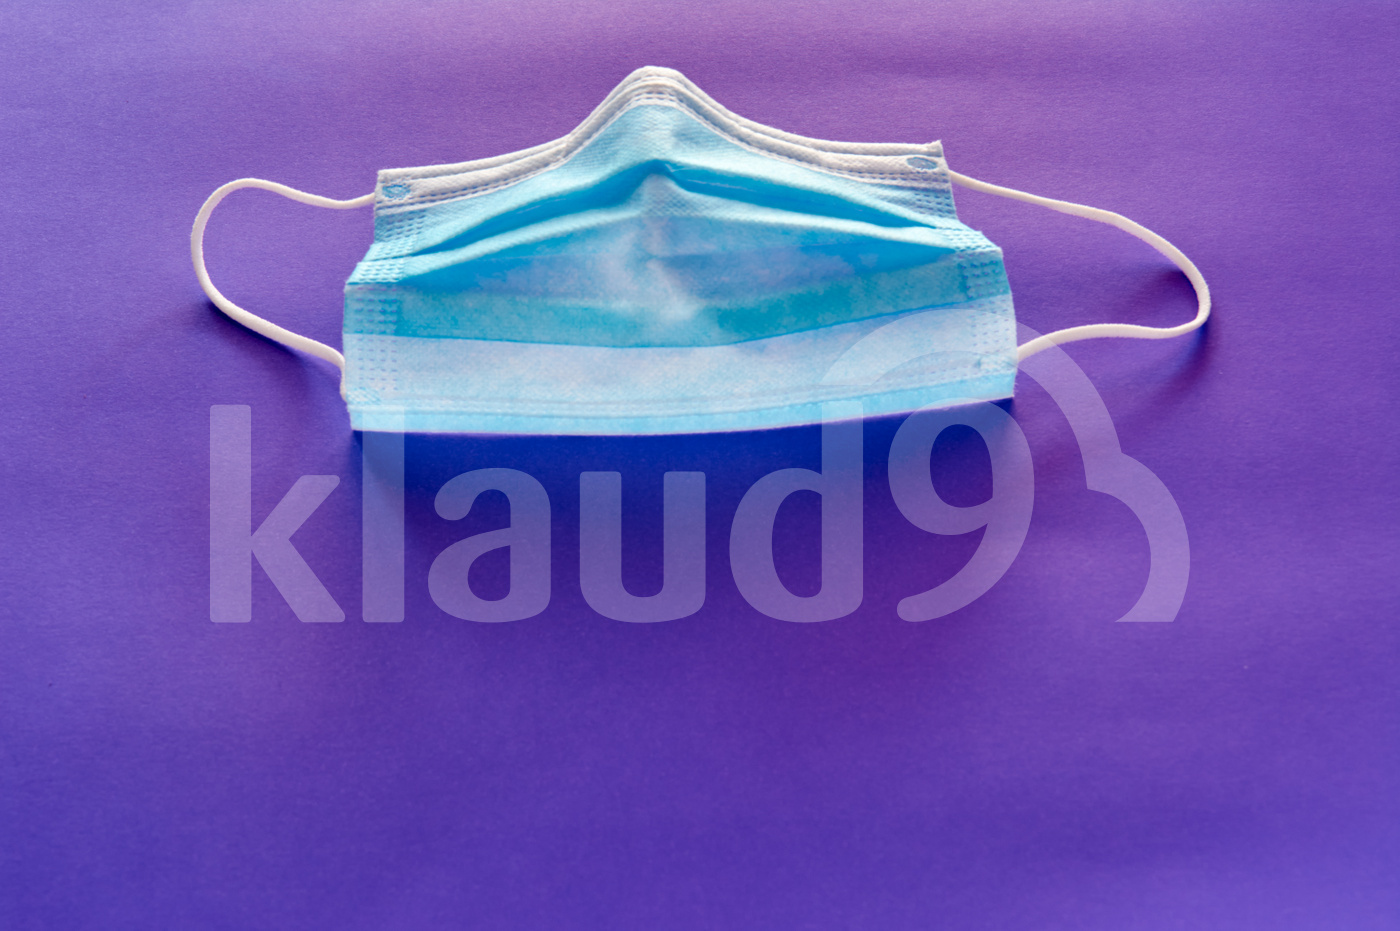 Blue medical face mask to avoid contagious diseases pattern on purple background